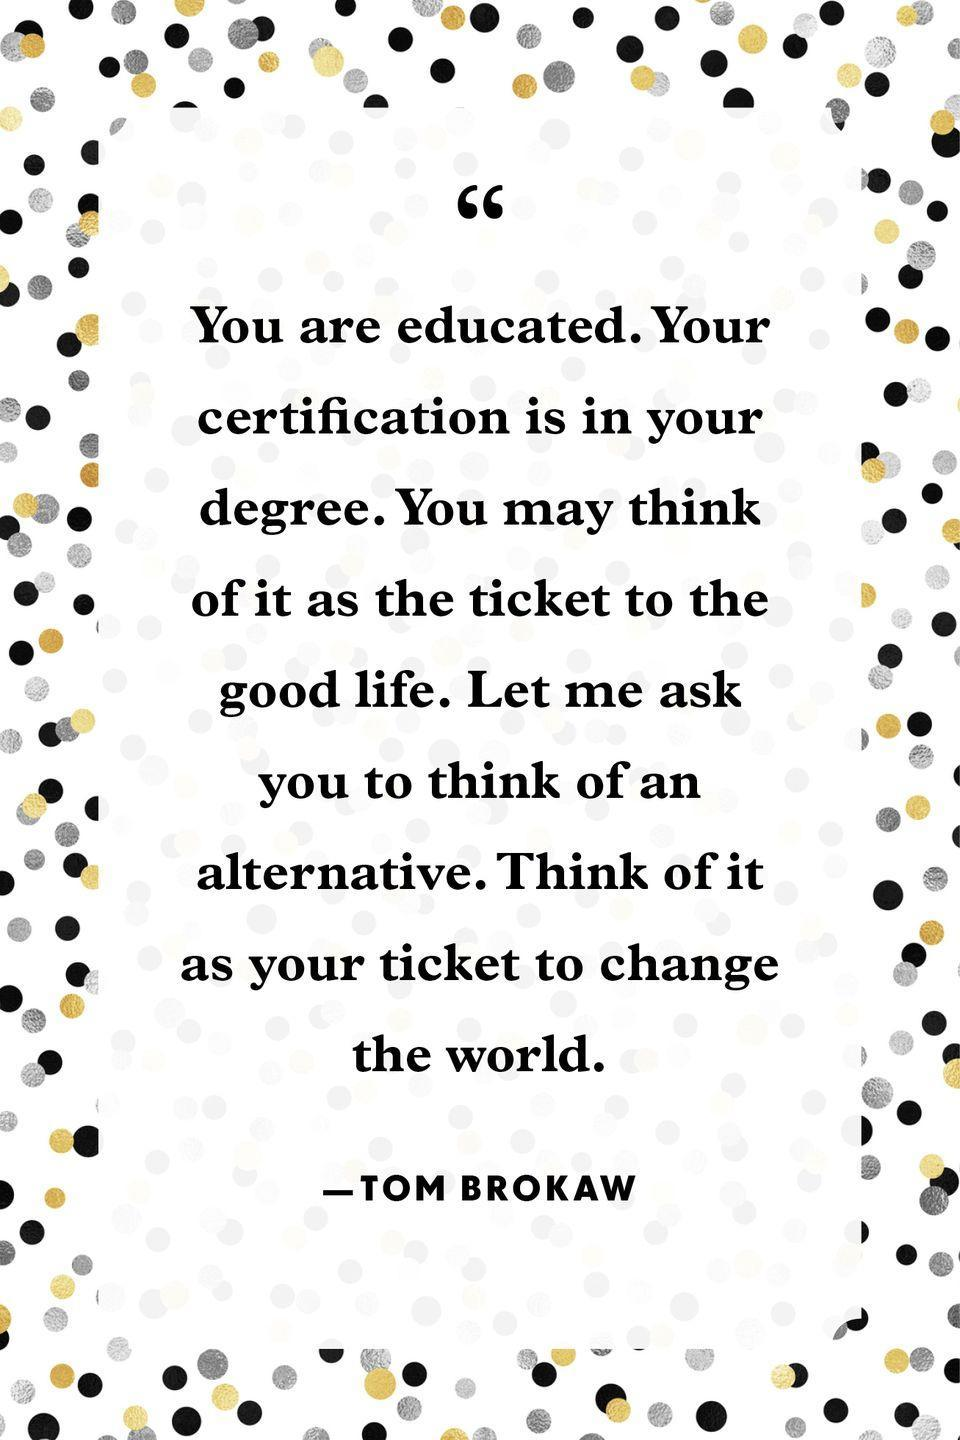 """<p>""""You are educated. Your certification is in your degree. You may think of it as the ticket to the good life. Let me ask you to think of an alternative. Think of it as your ticket to change the world.""""</p>"""